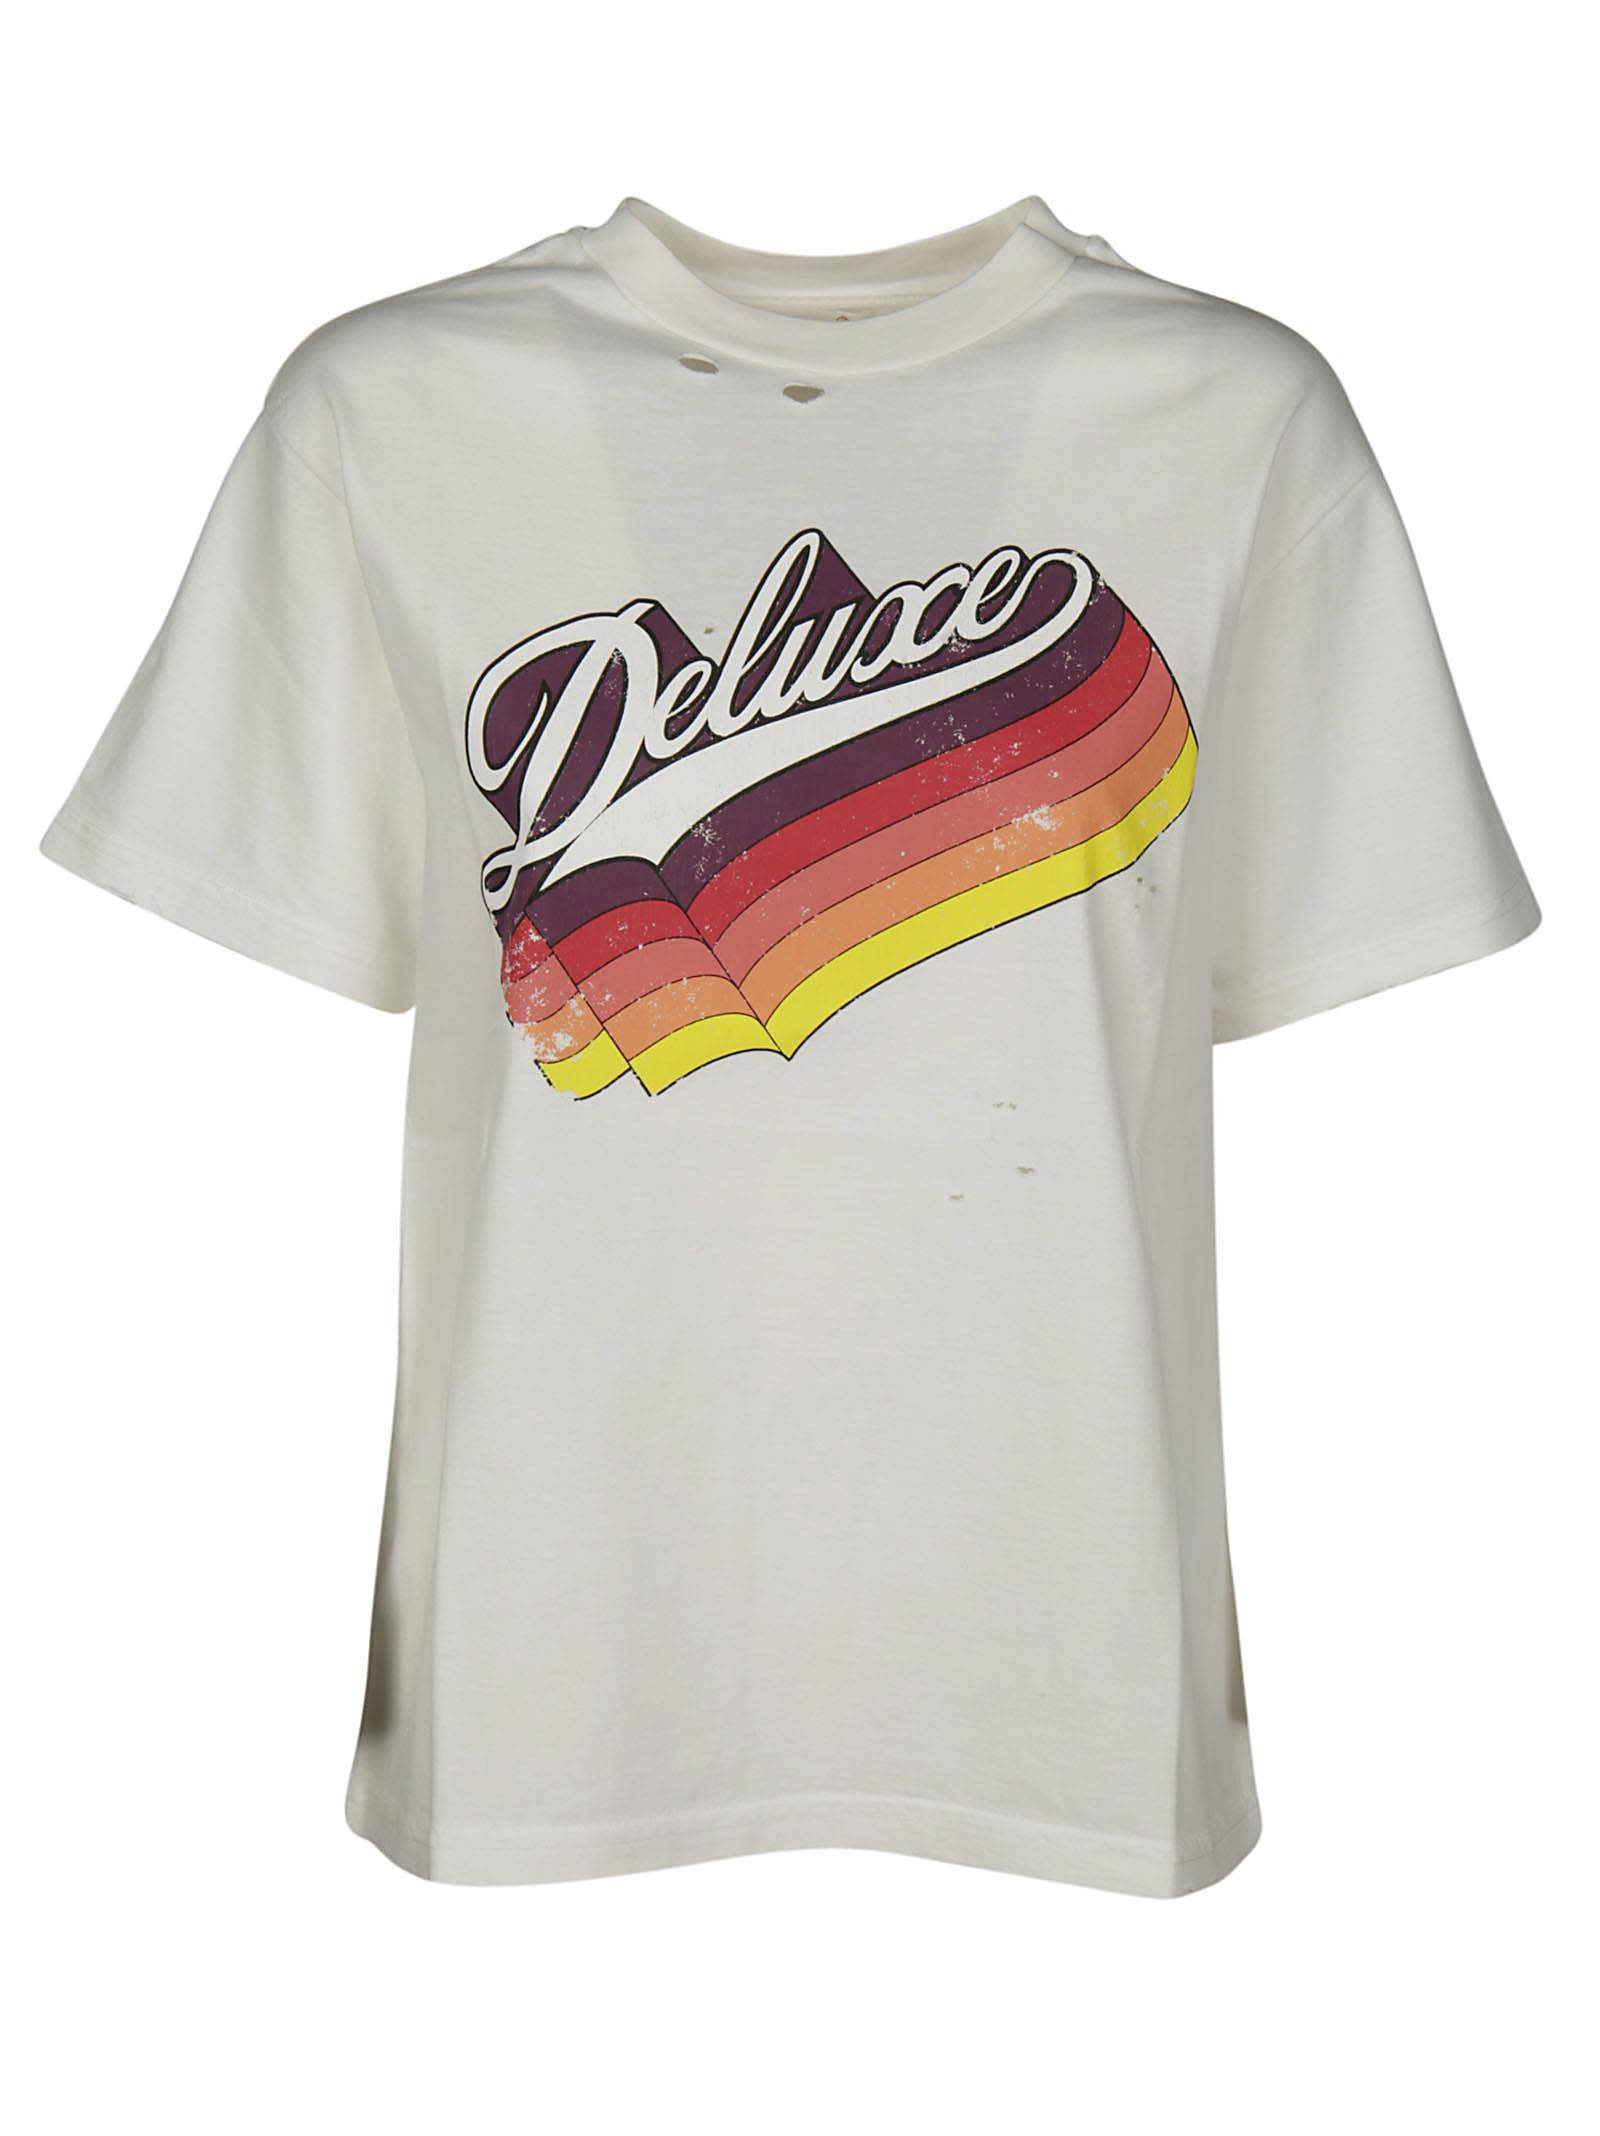 Golden Goose Deluxe T-shirt